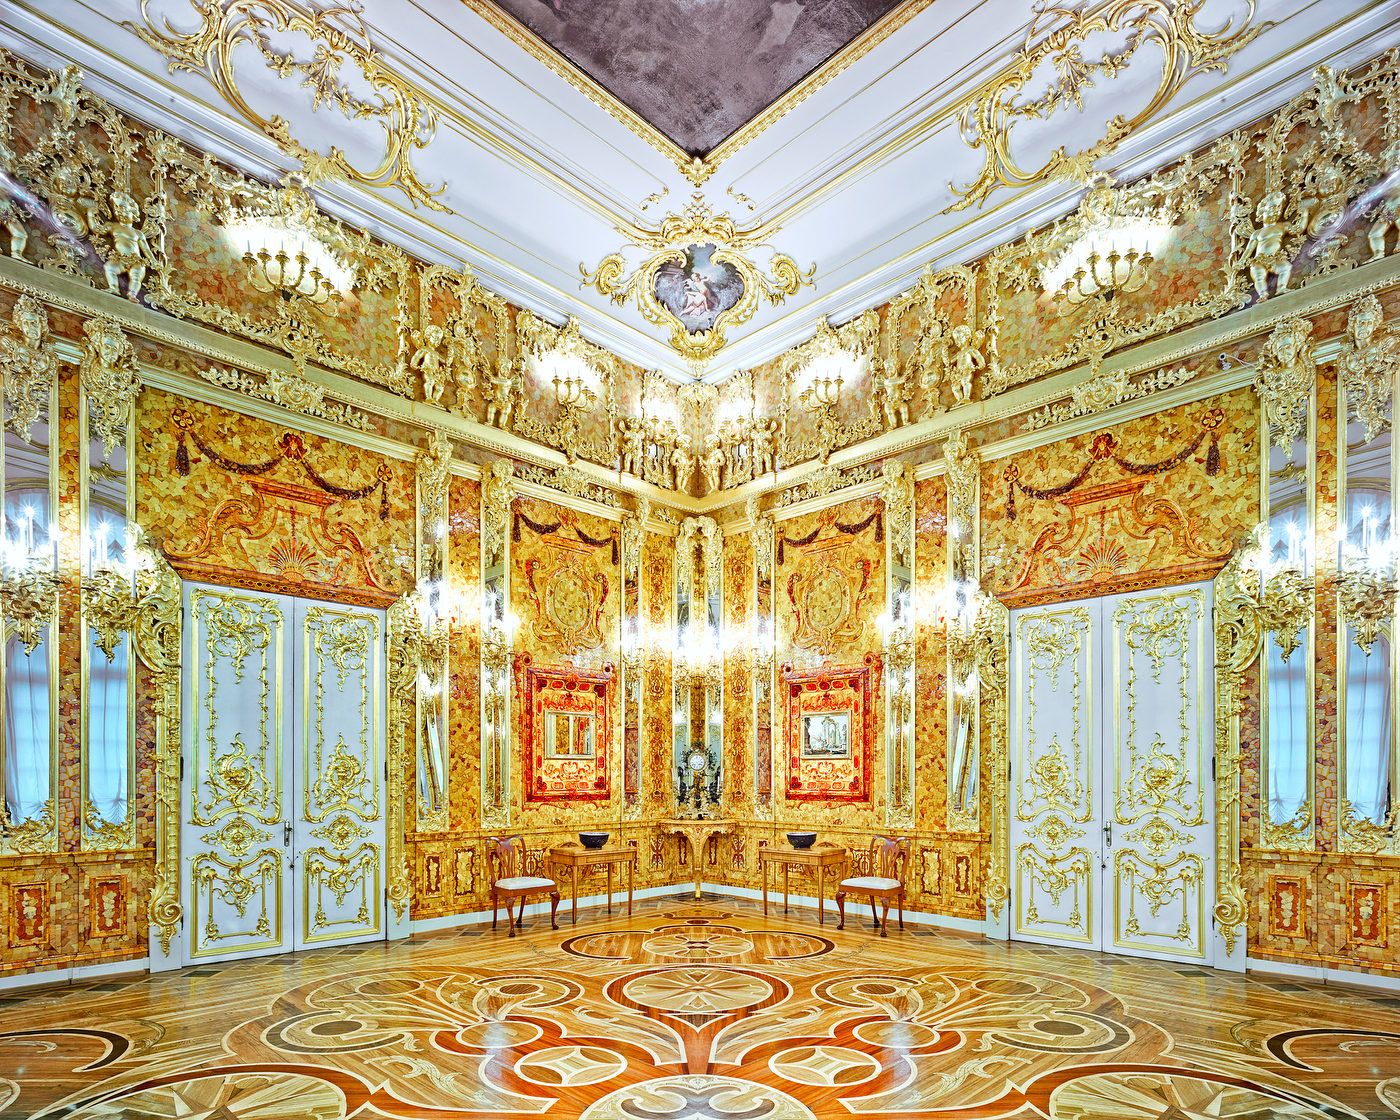 RUSSIA: A Bright Future,  2014-2015 Amber Room, Catherine Palace, Pushkin, Russia, 2015